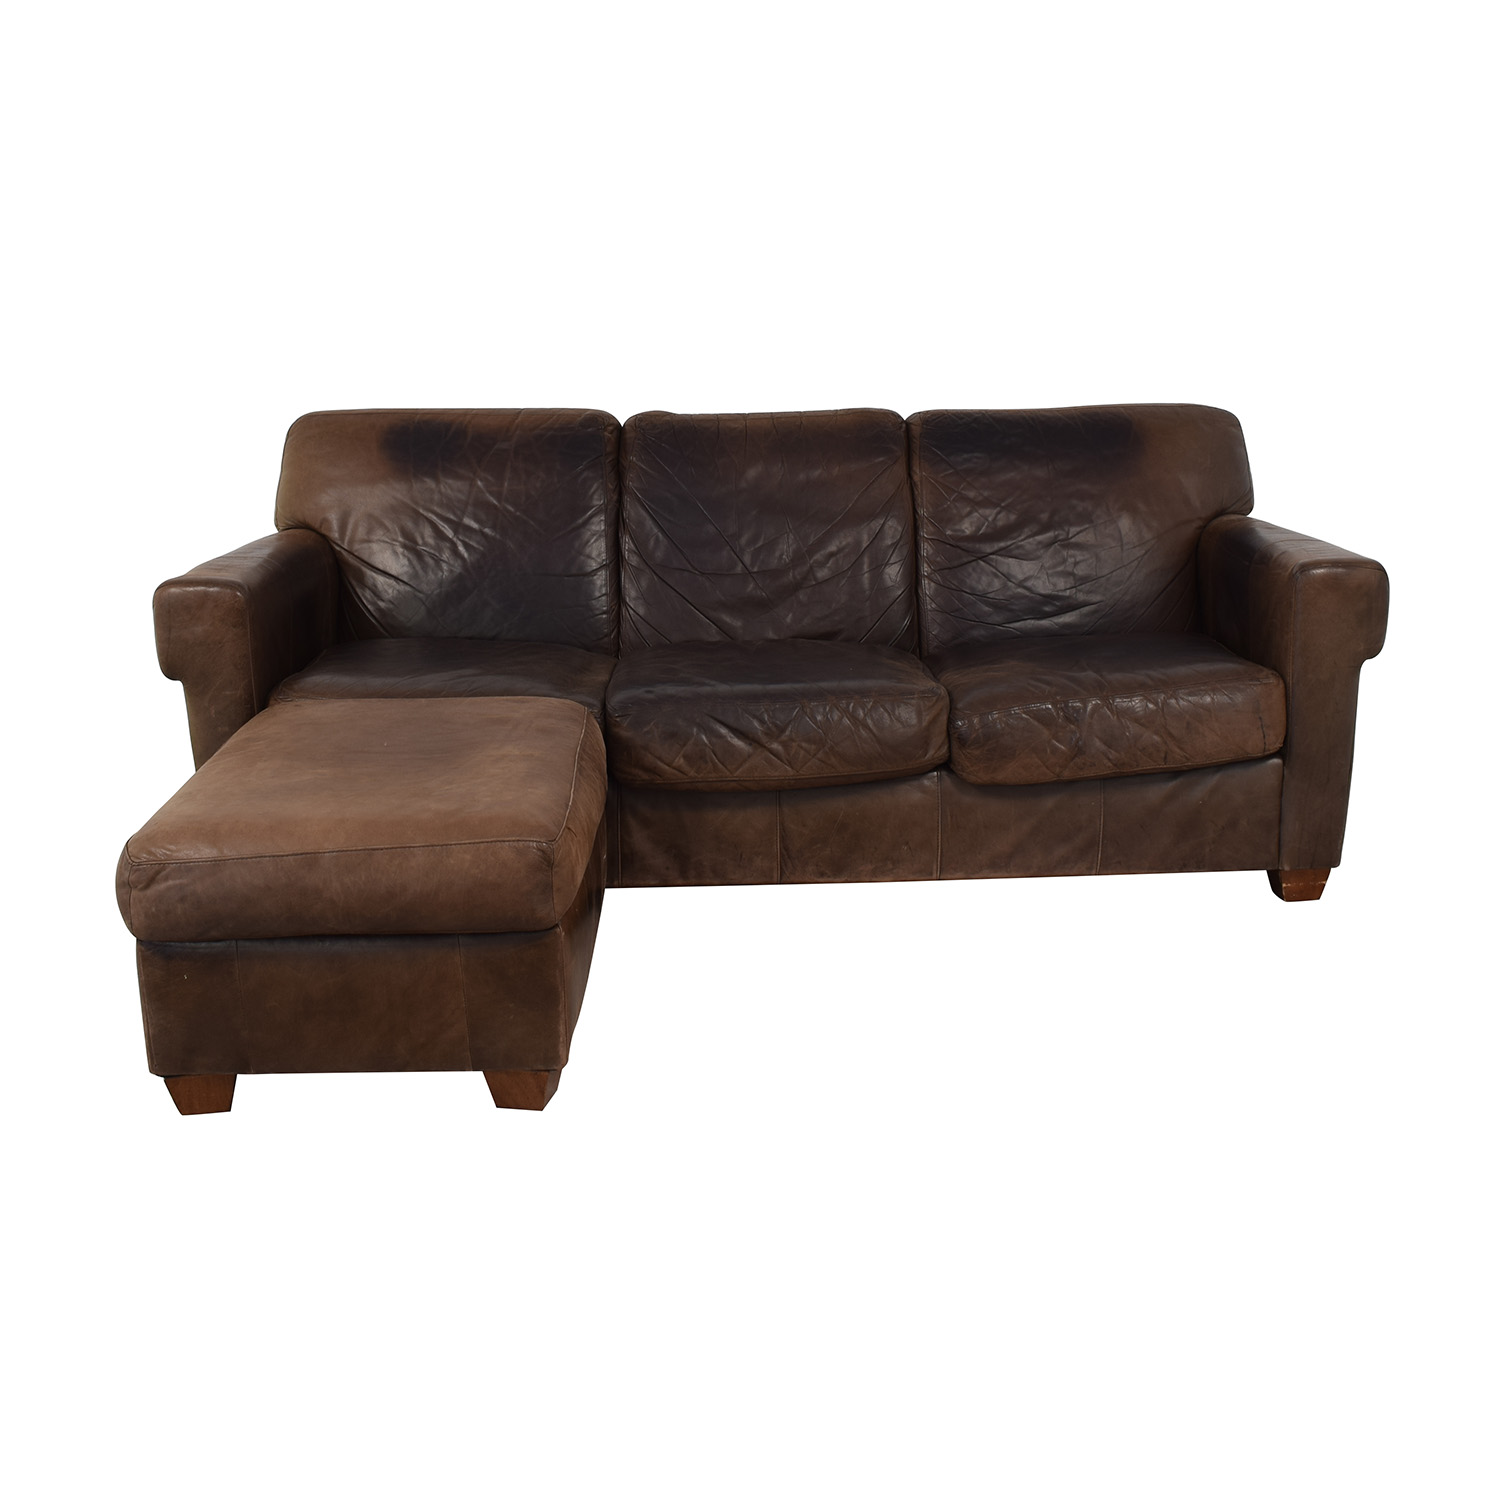 87% OFF - Distressed Leather Sofa with Ottoman / Sofas